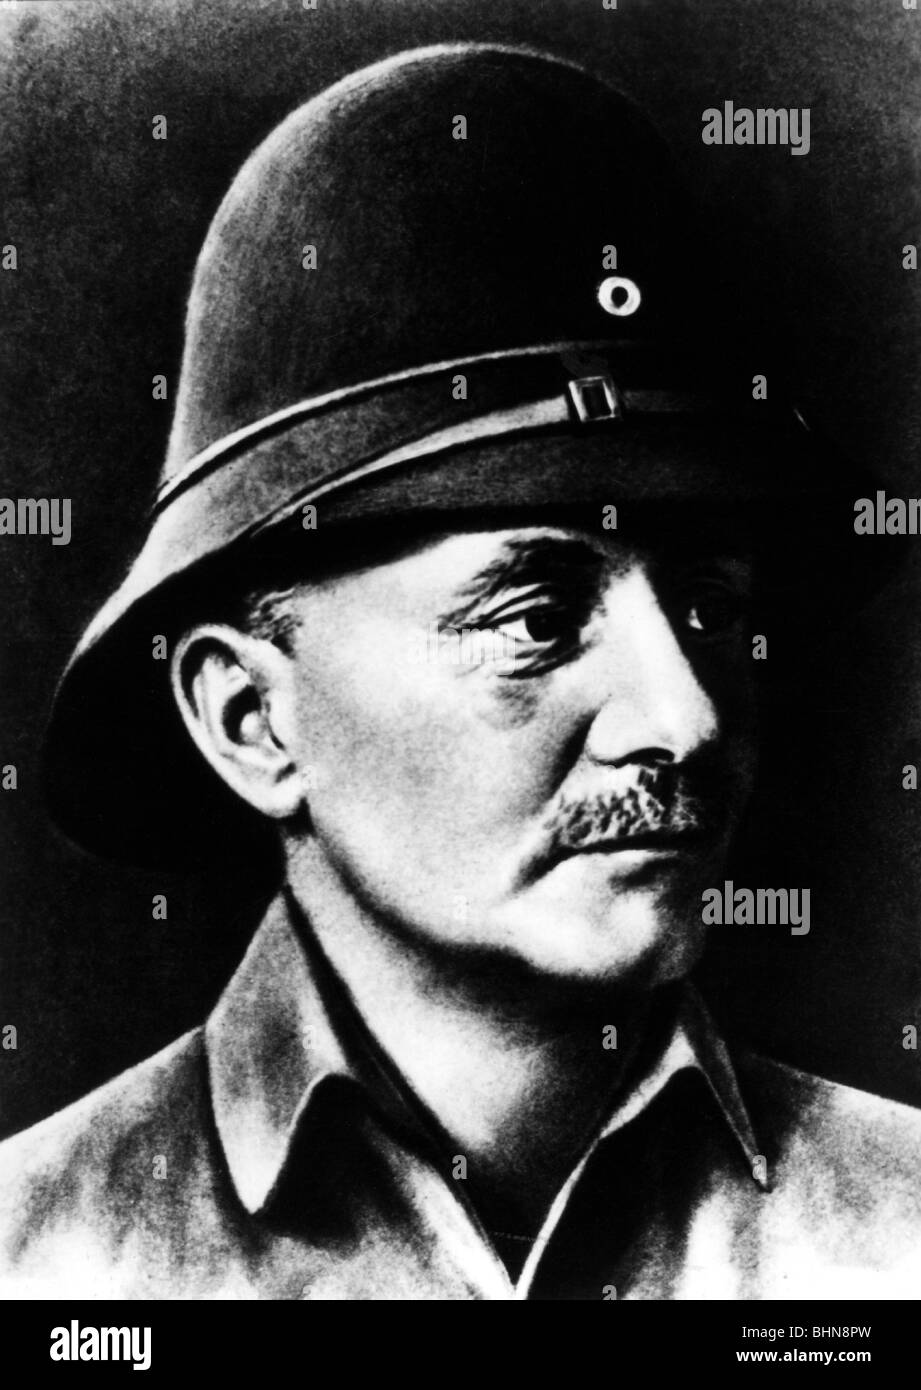 Lettow-Vorbeck, Paul von, 20.3.1870 - 9.3.1964, German general, commander of German forces in East Africa 1913  - Stock Image